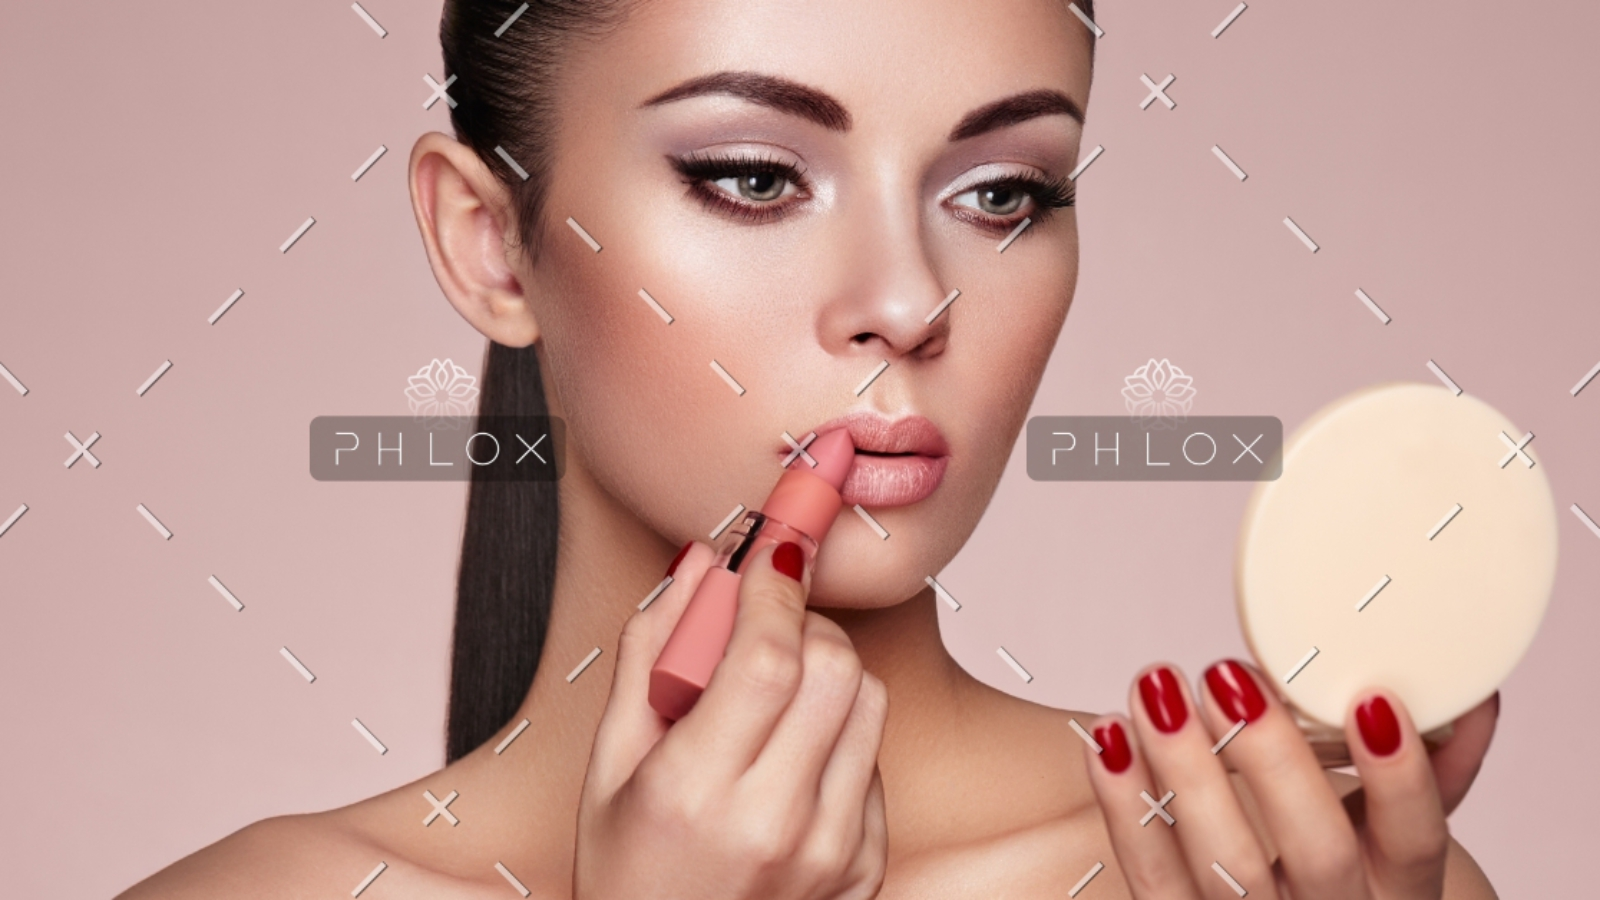 demo-attachment-551-beautiful-woman-paints-lips-with-lipstick-PMB6YWP-1